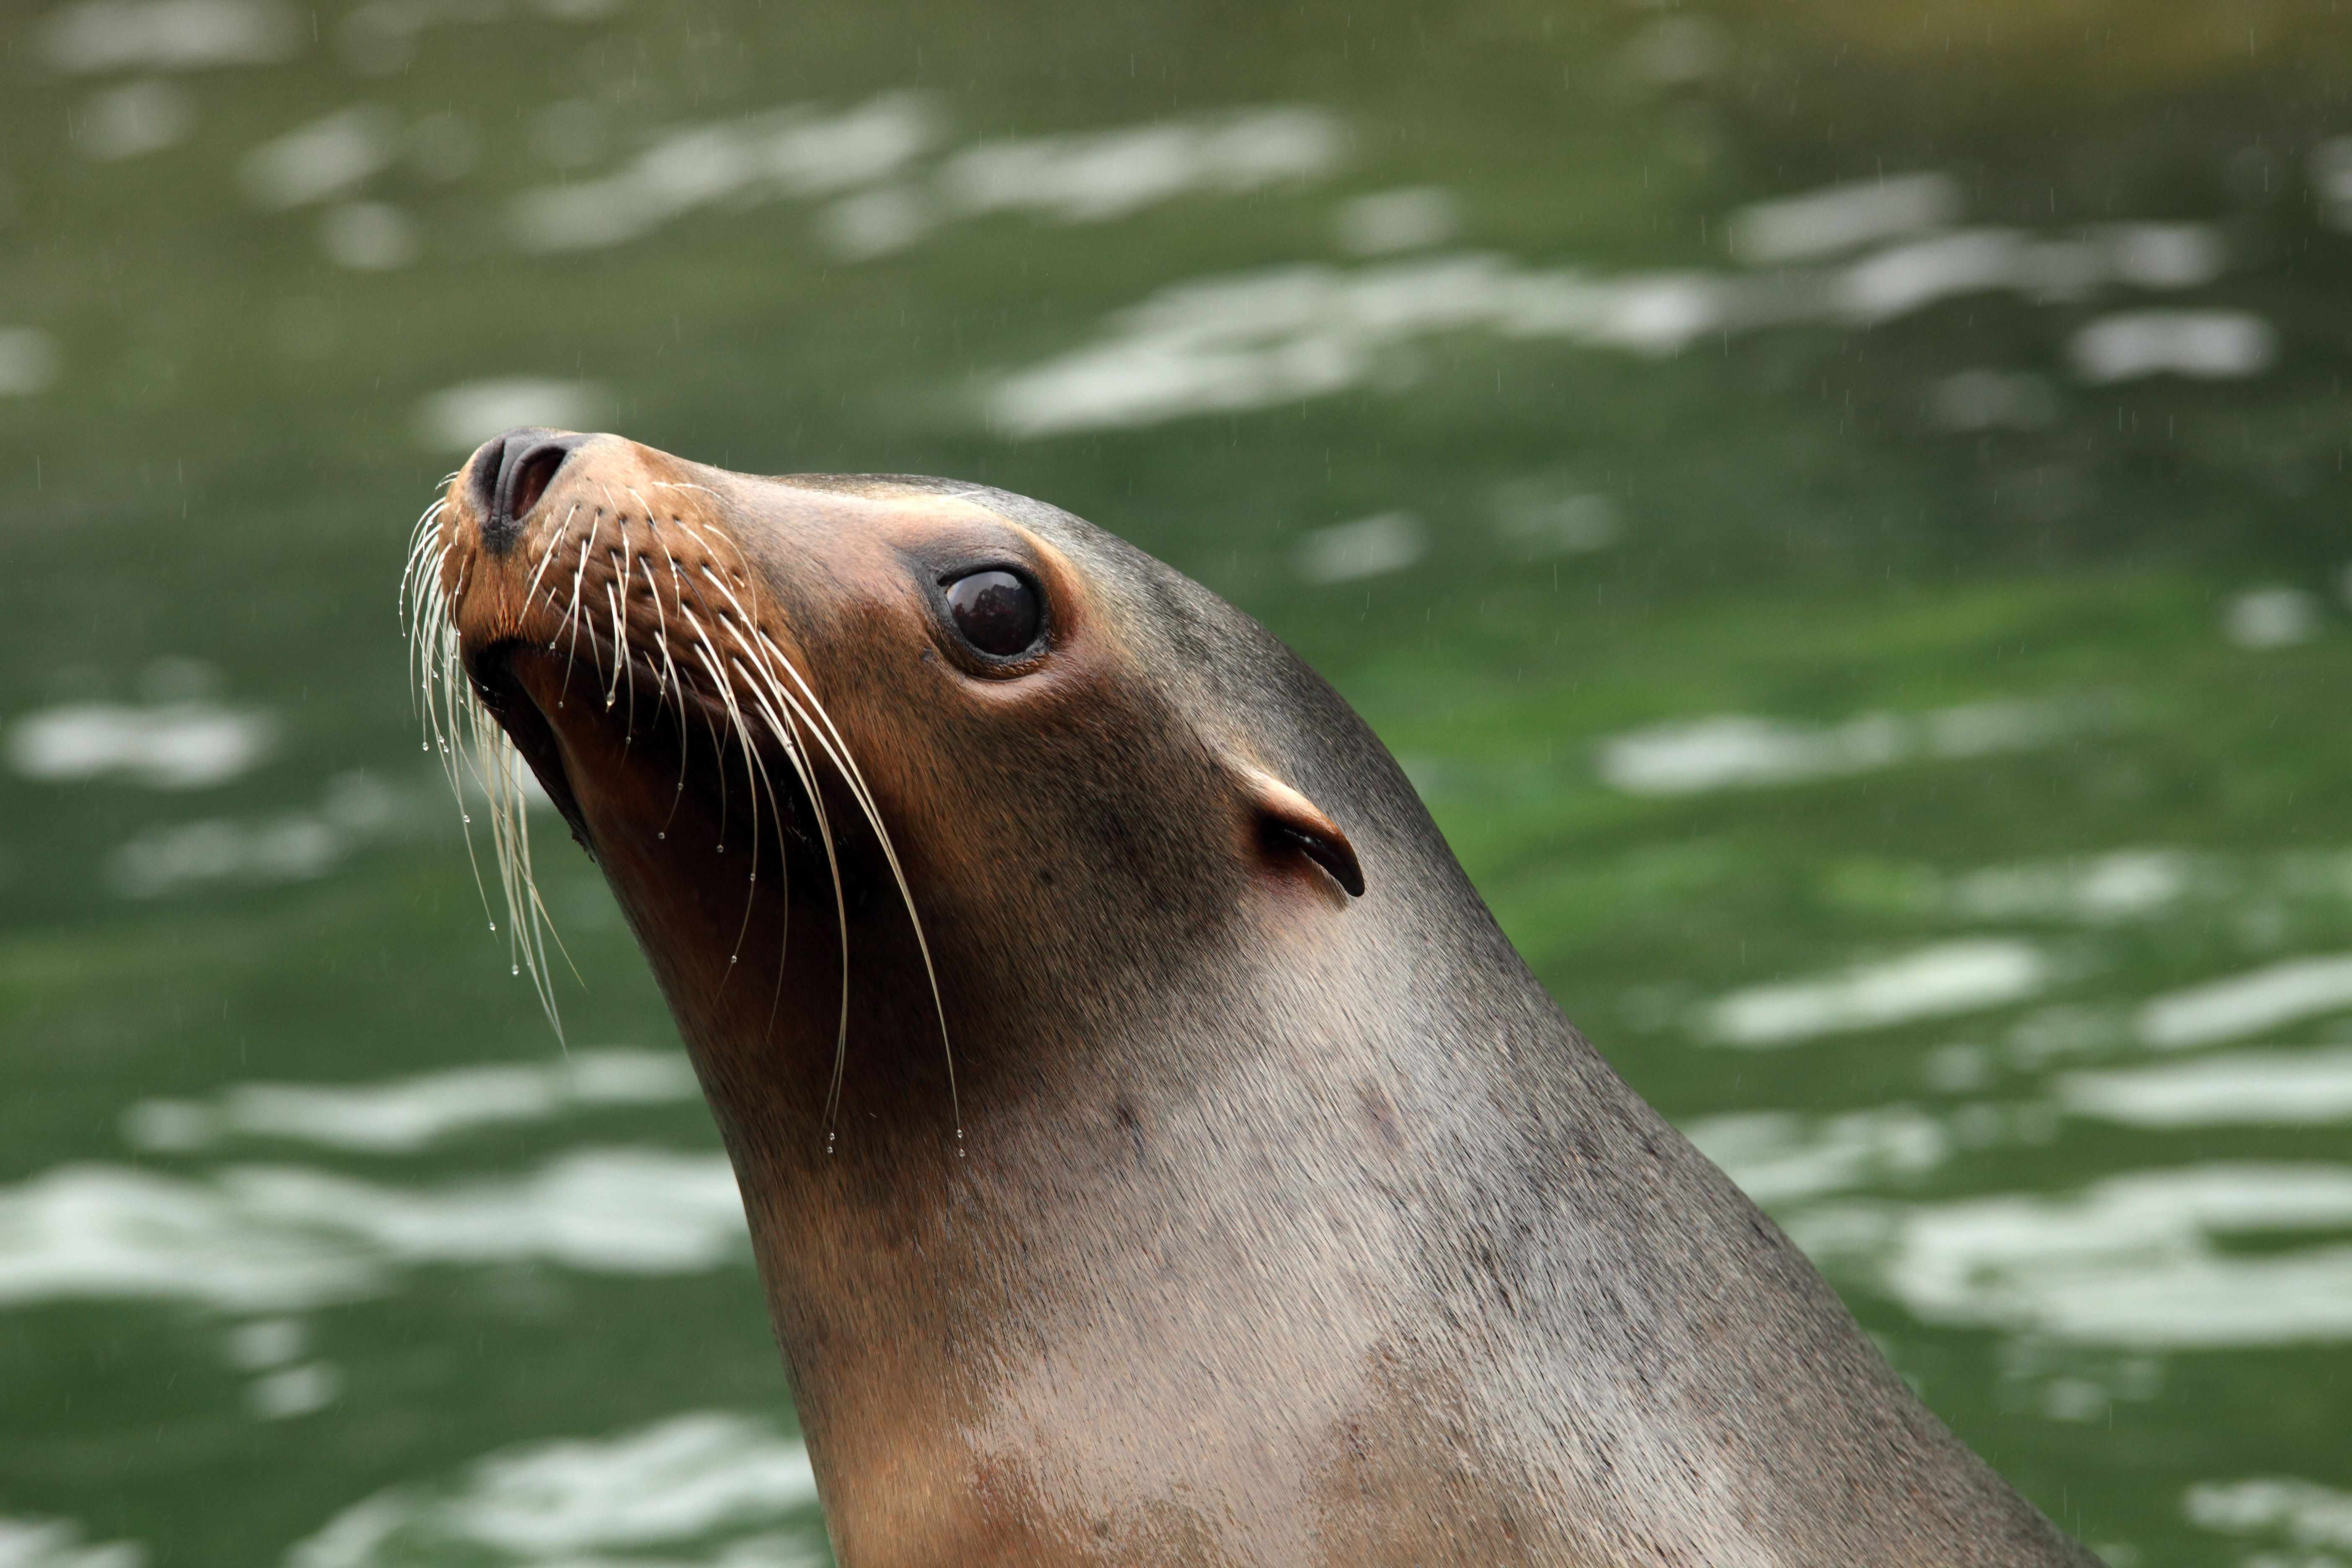 Seal at Prospect Park Zoo